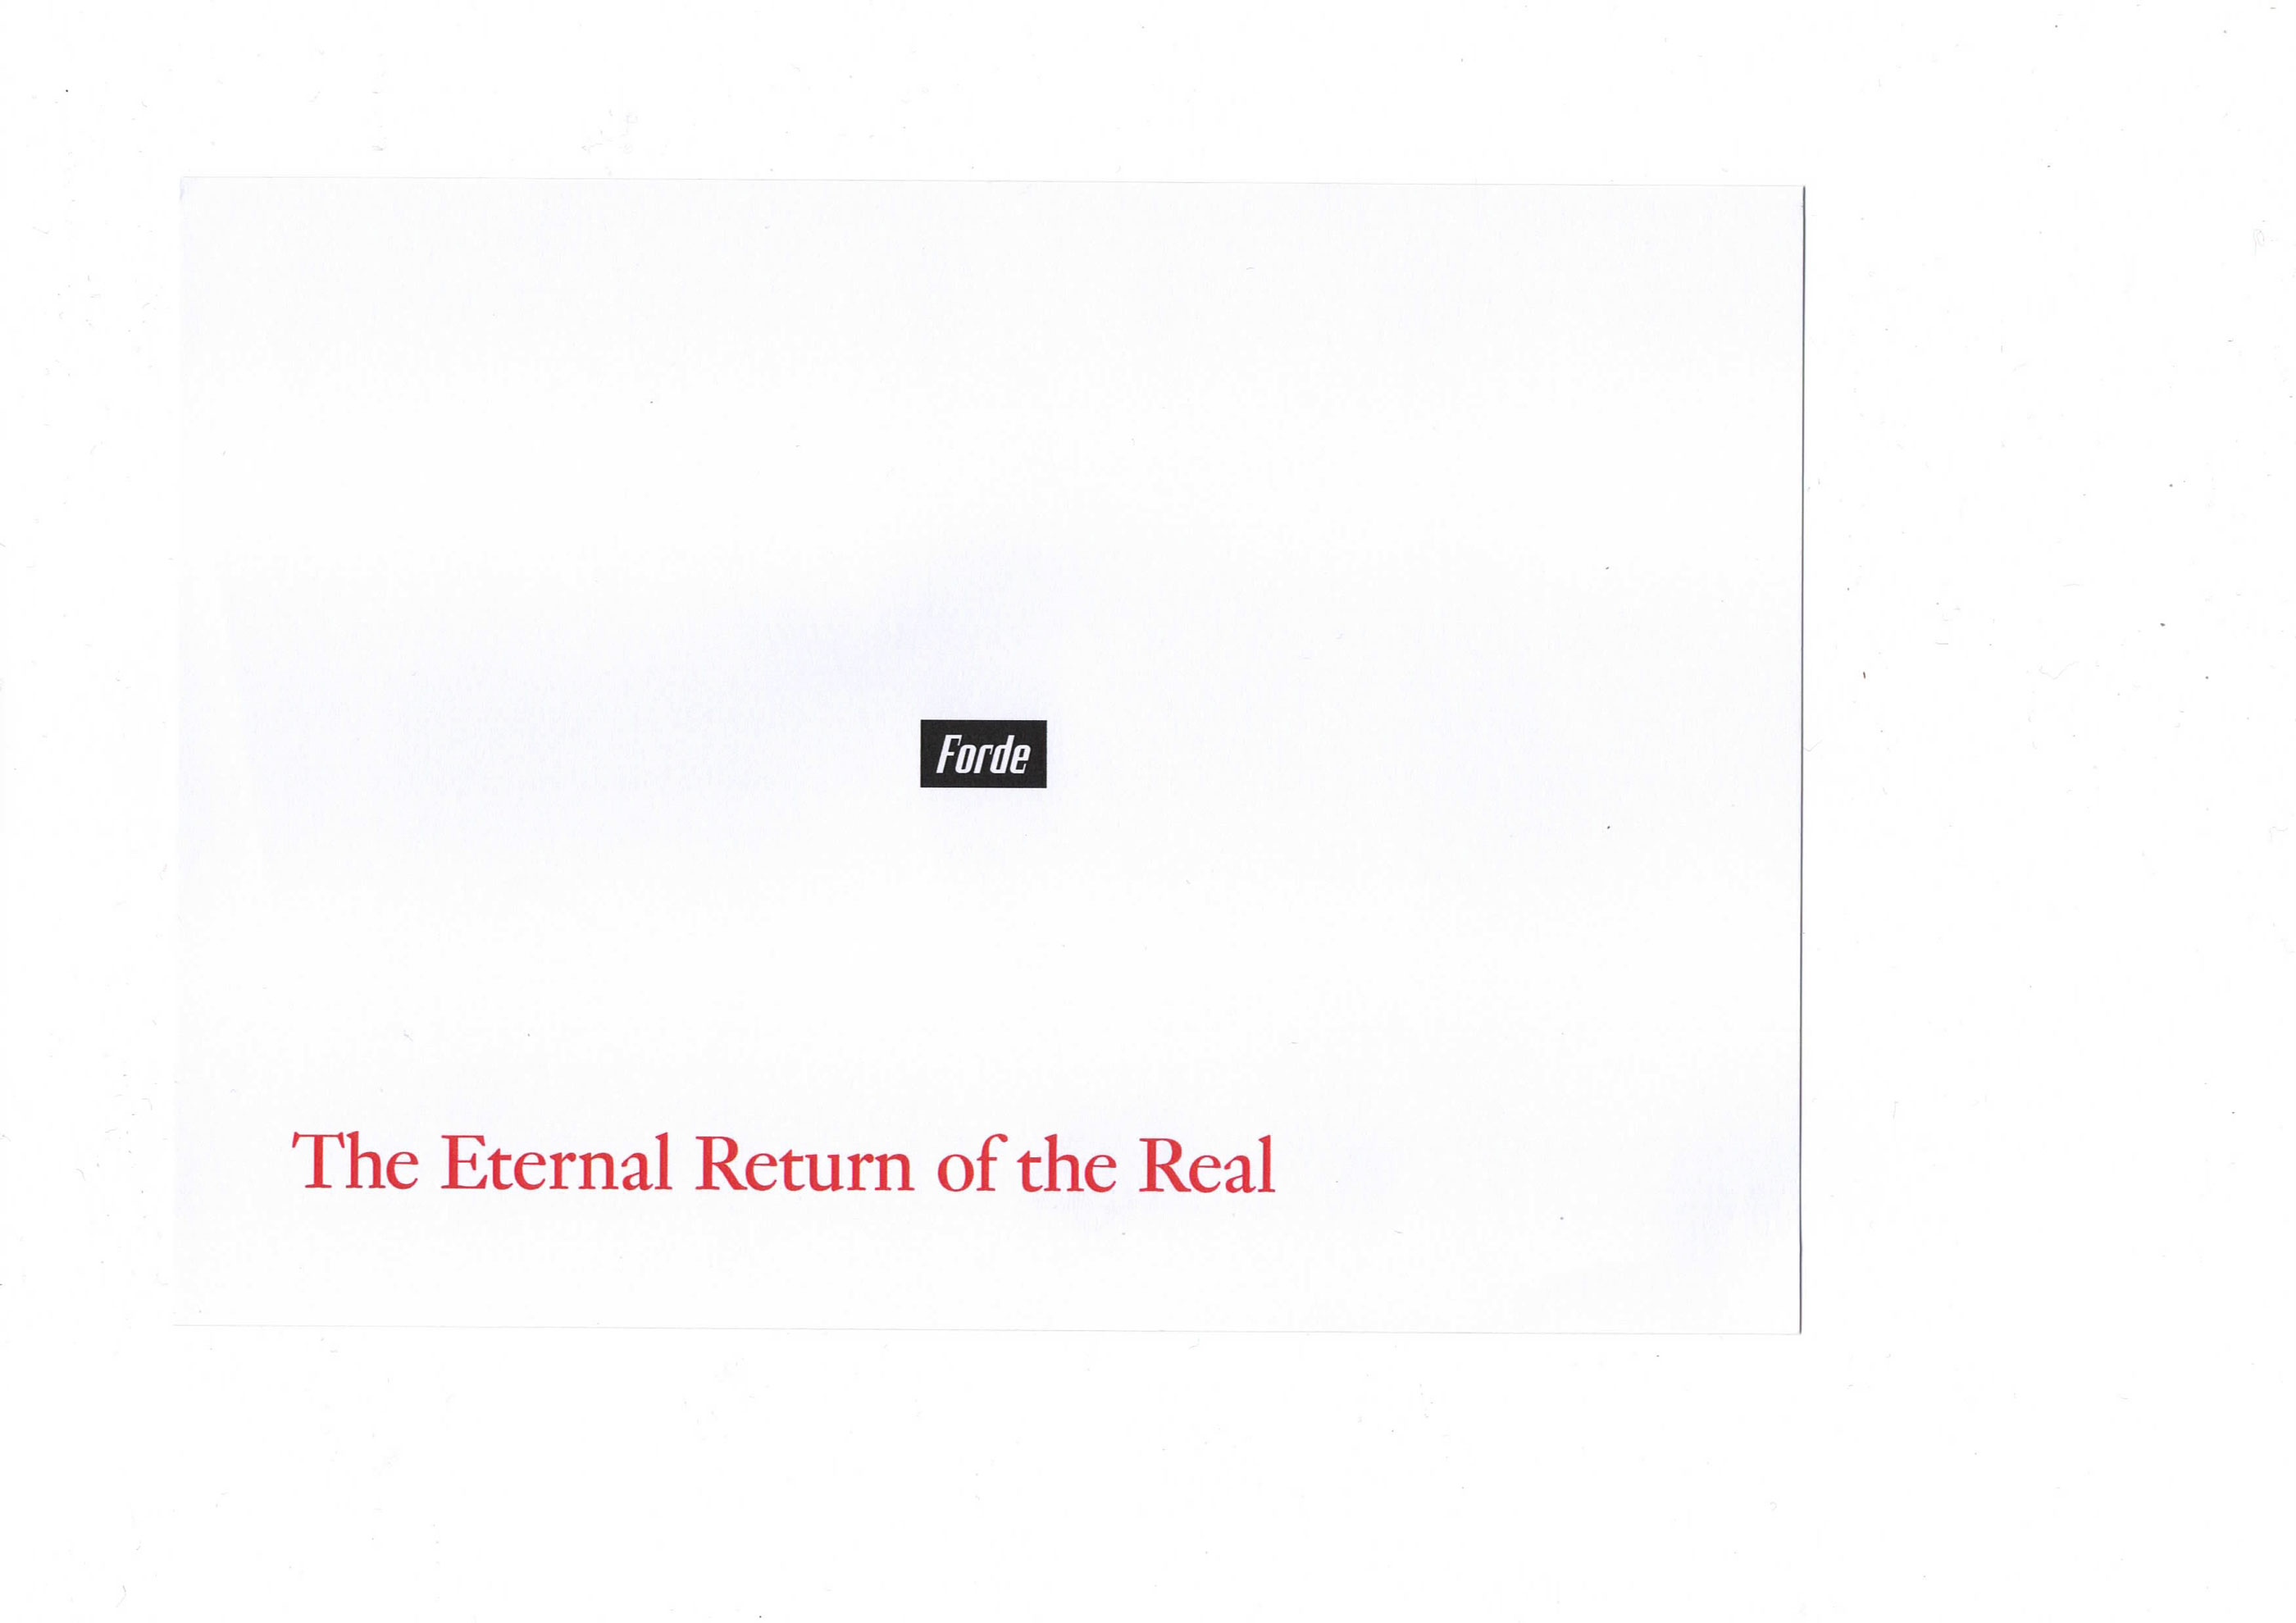 forde - flyer - The Eternal Return of the Real